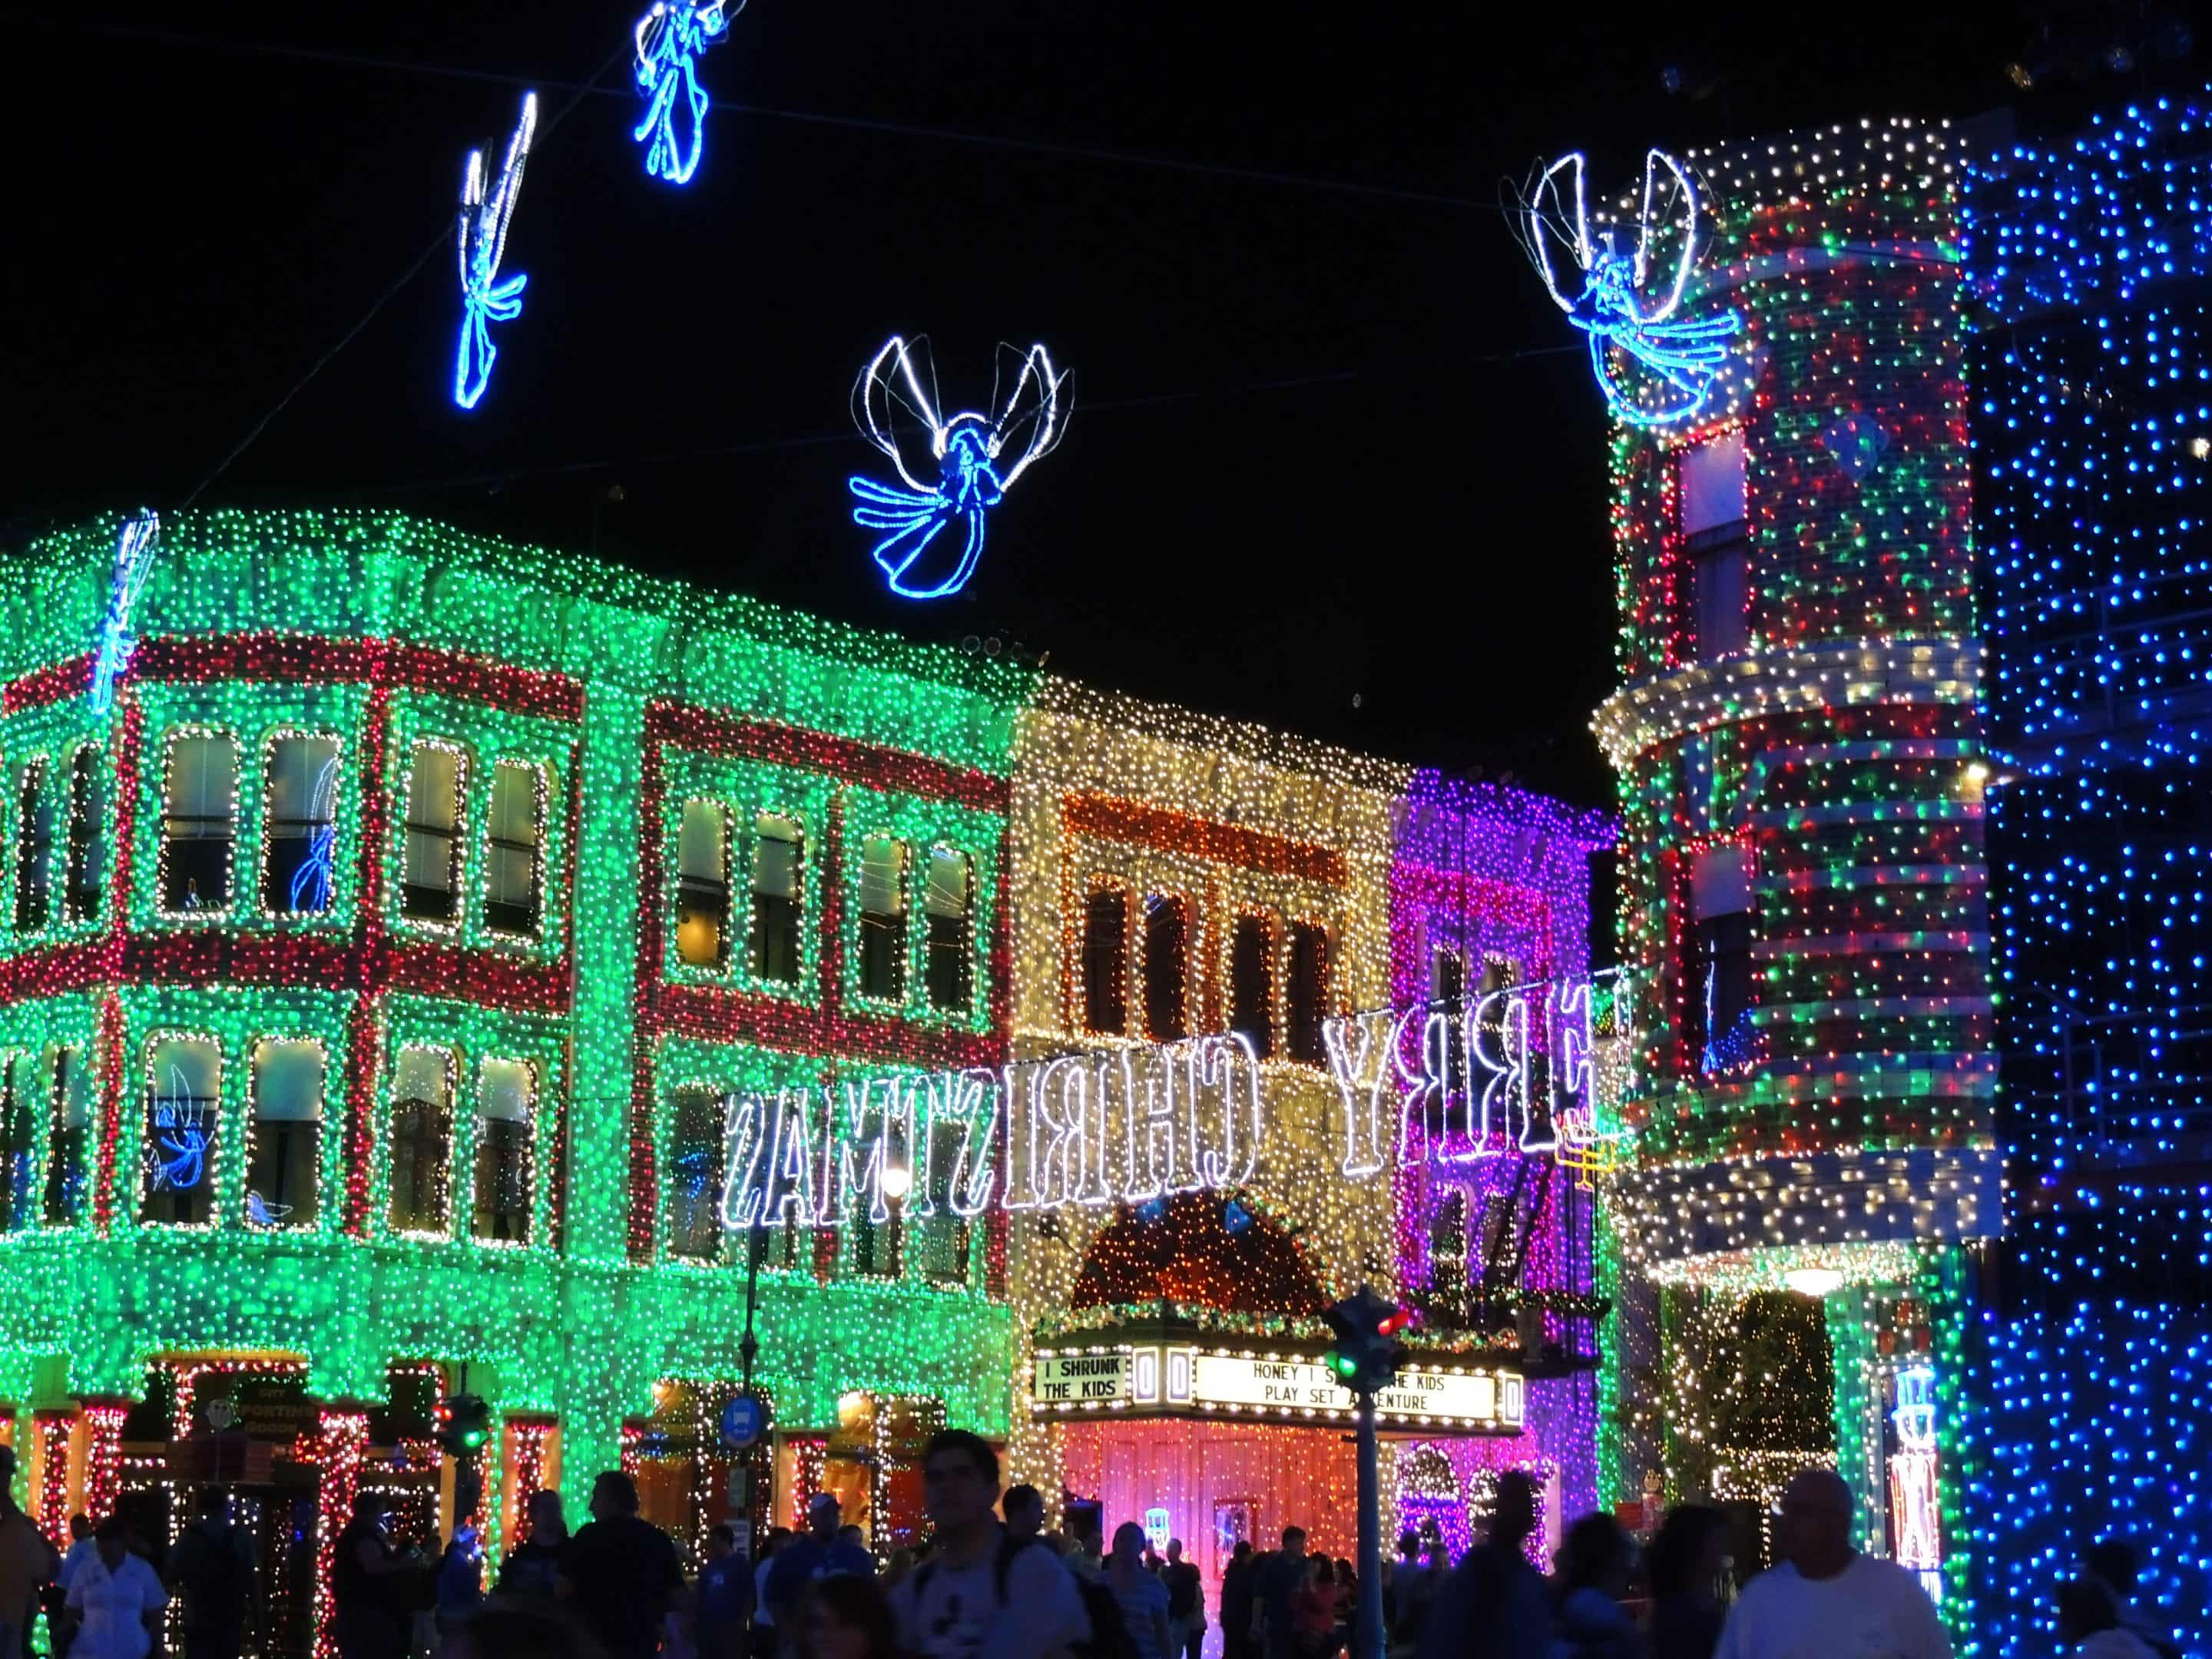 Spectacle of Dancing Lights